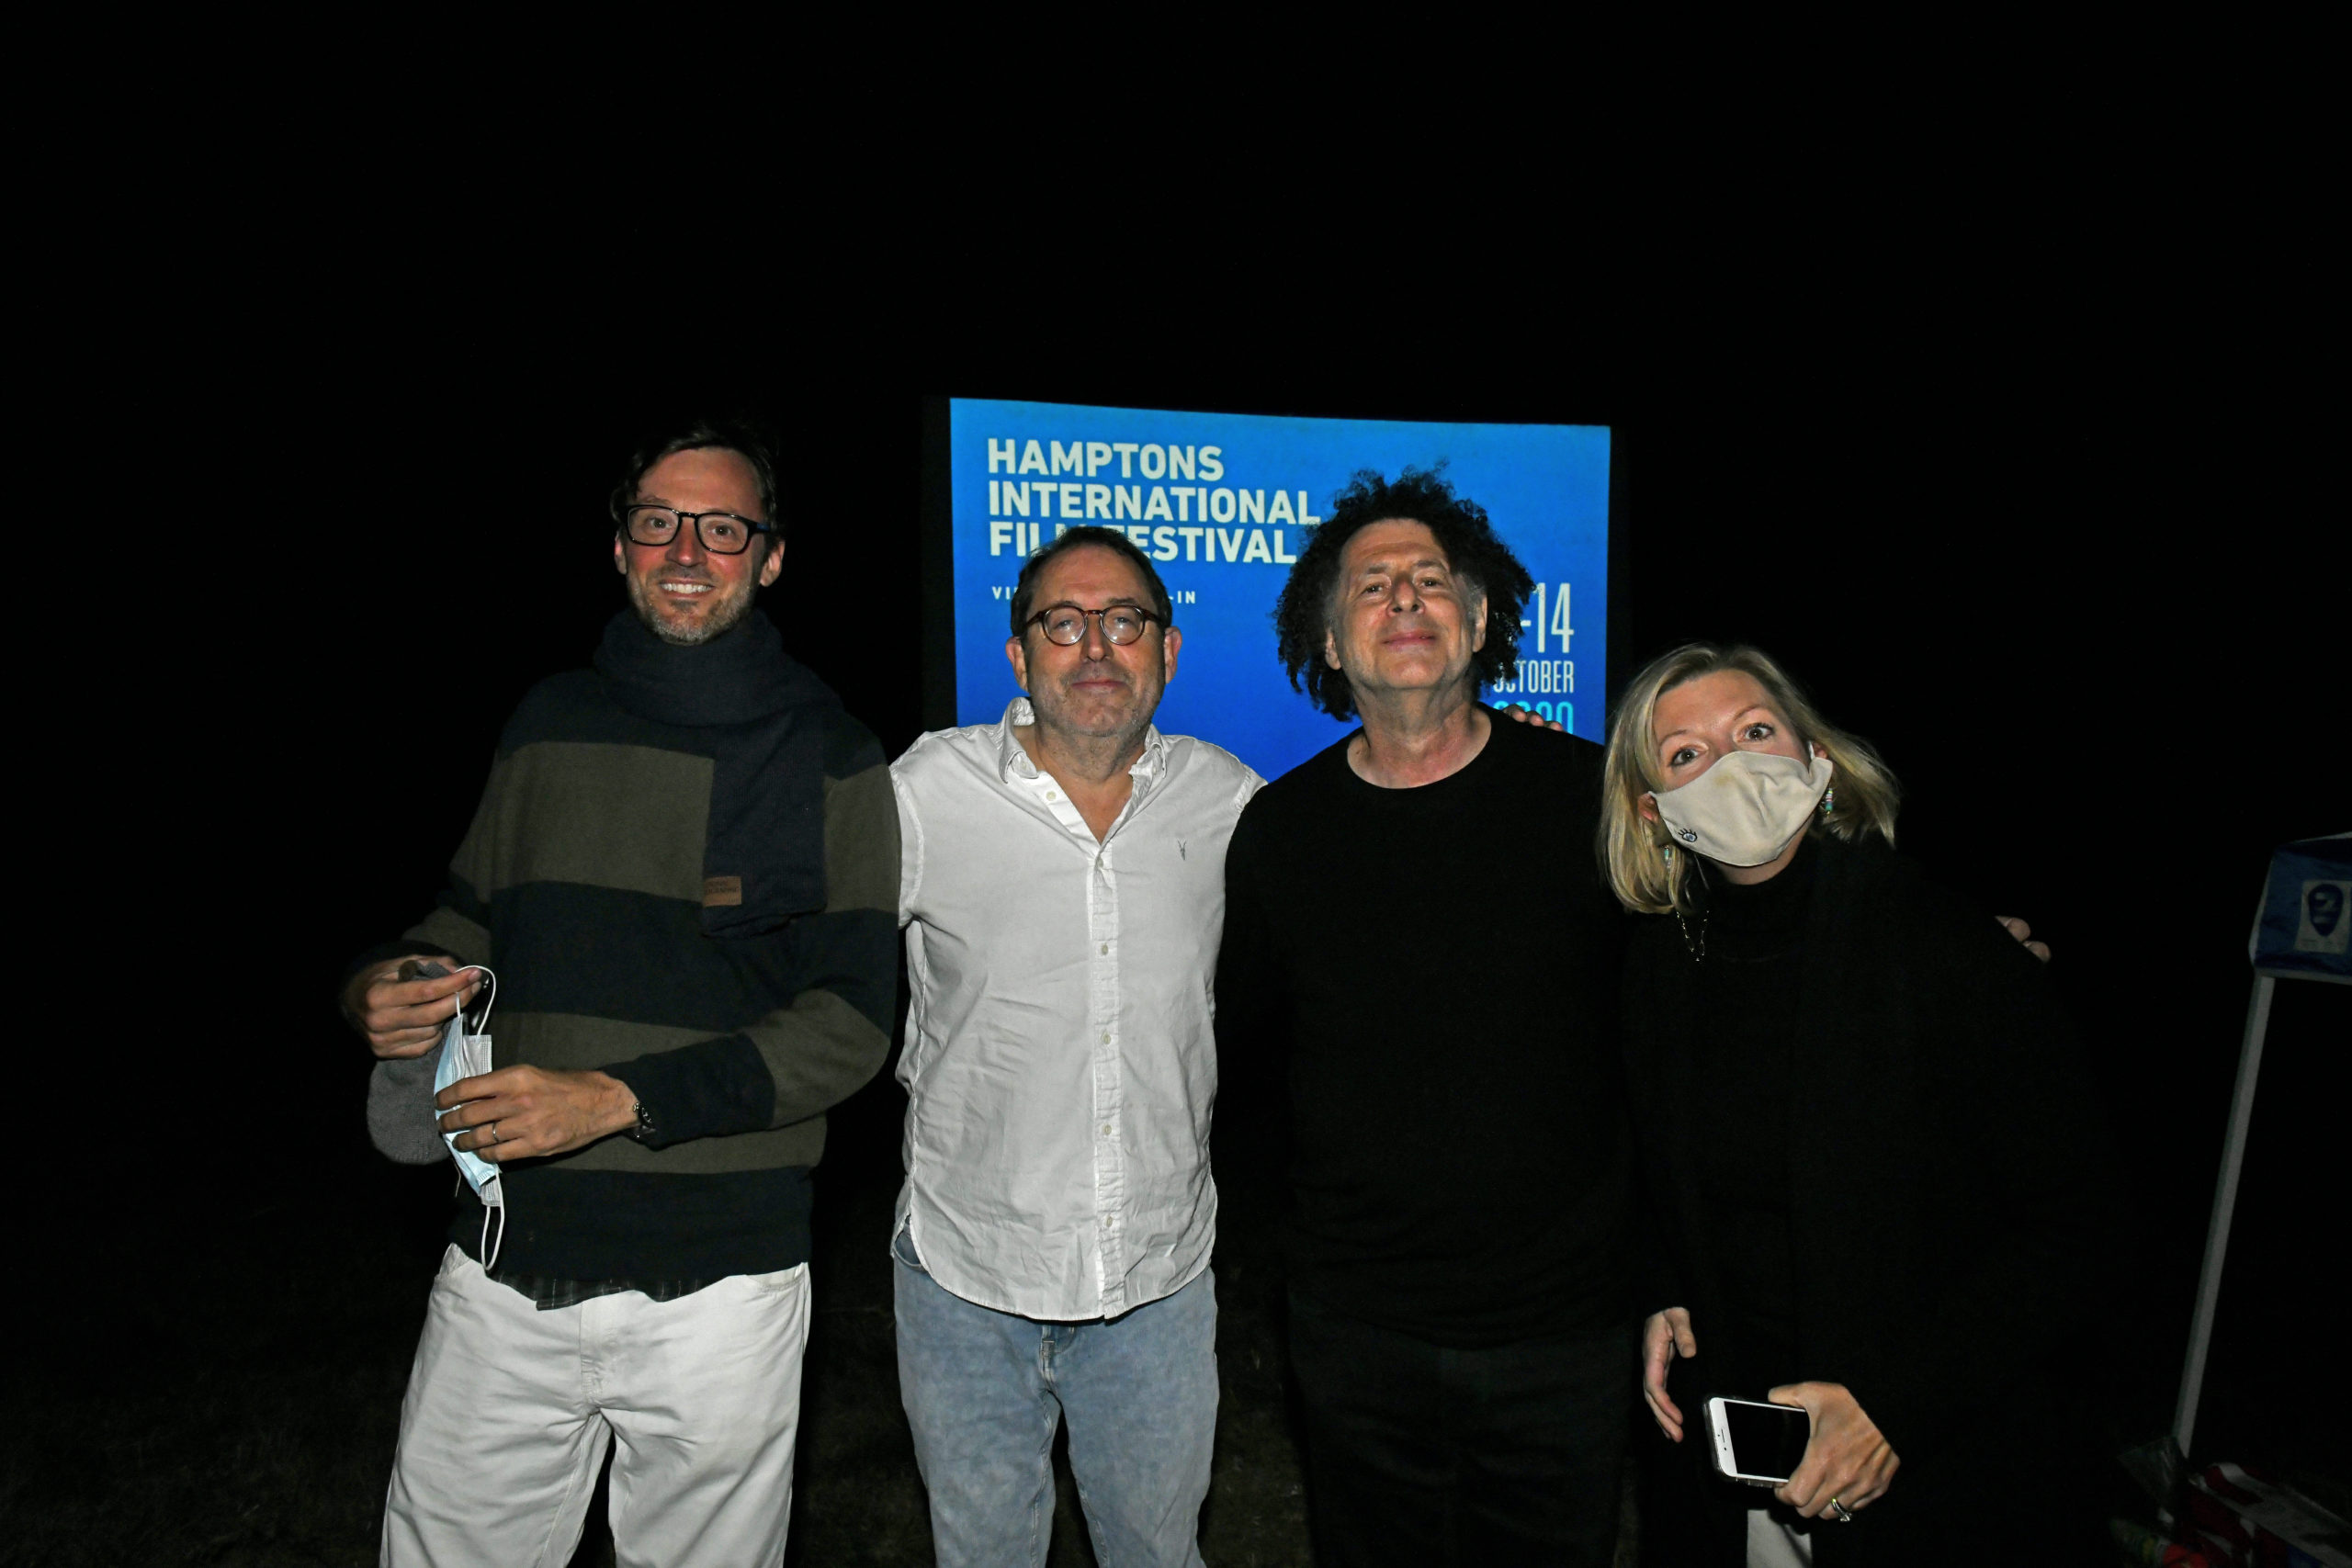 HIFF Artistic Director David Nugent, Co-President and Co-Founder of Sony Pictures Classics Michael Barker, Director Michael Dweck and HIFF Executive Director Anne Chaisson.